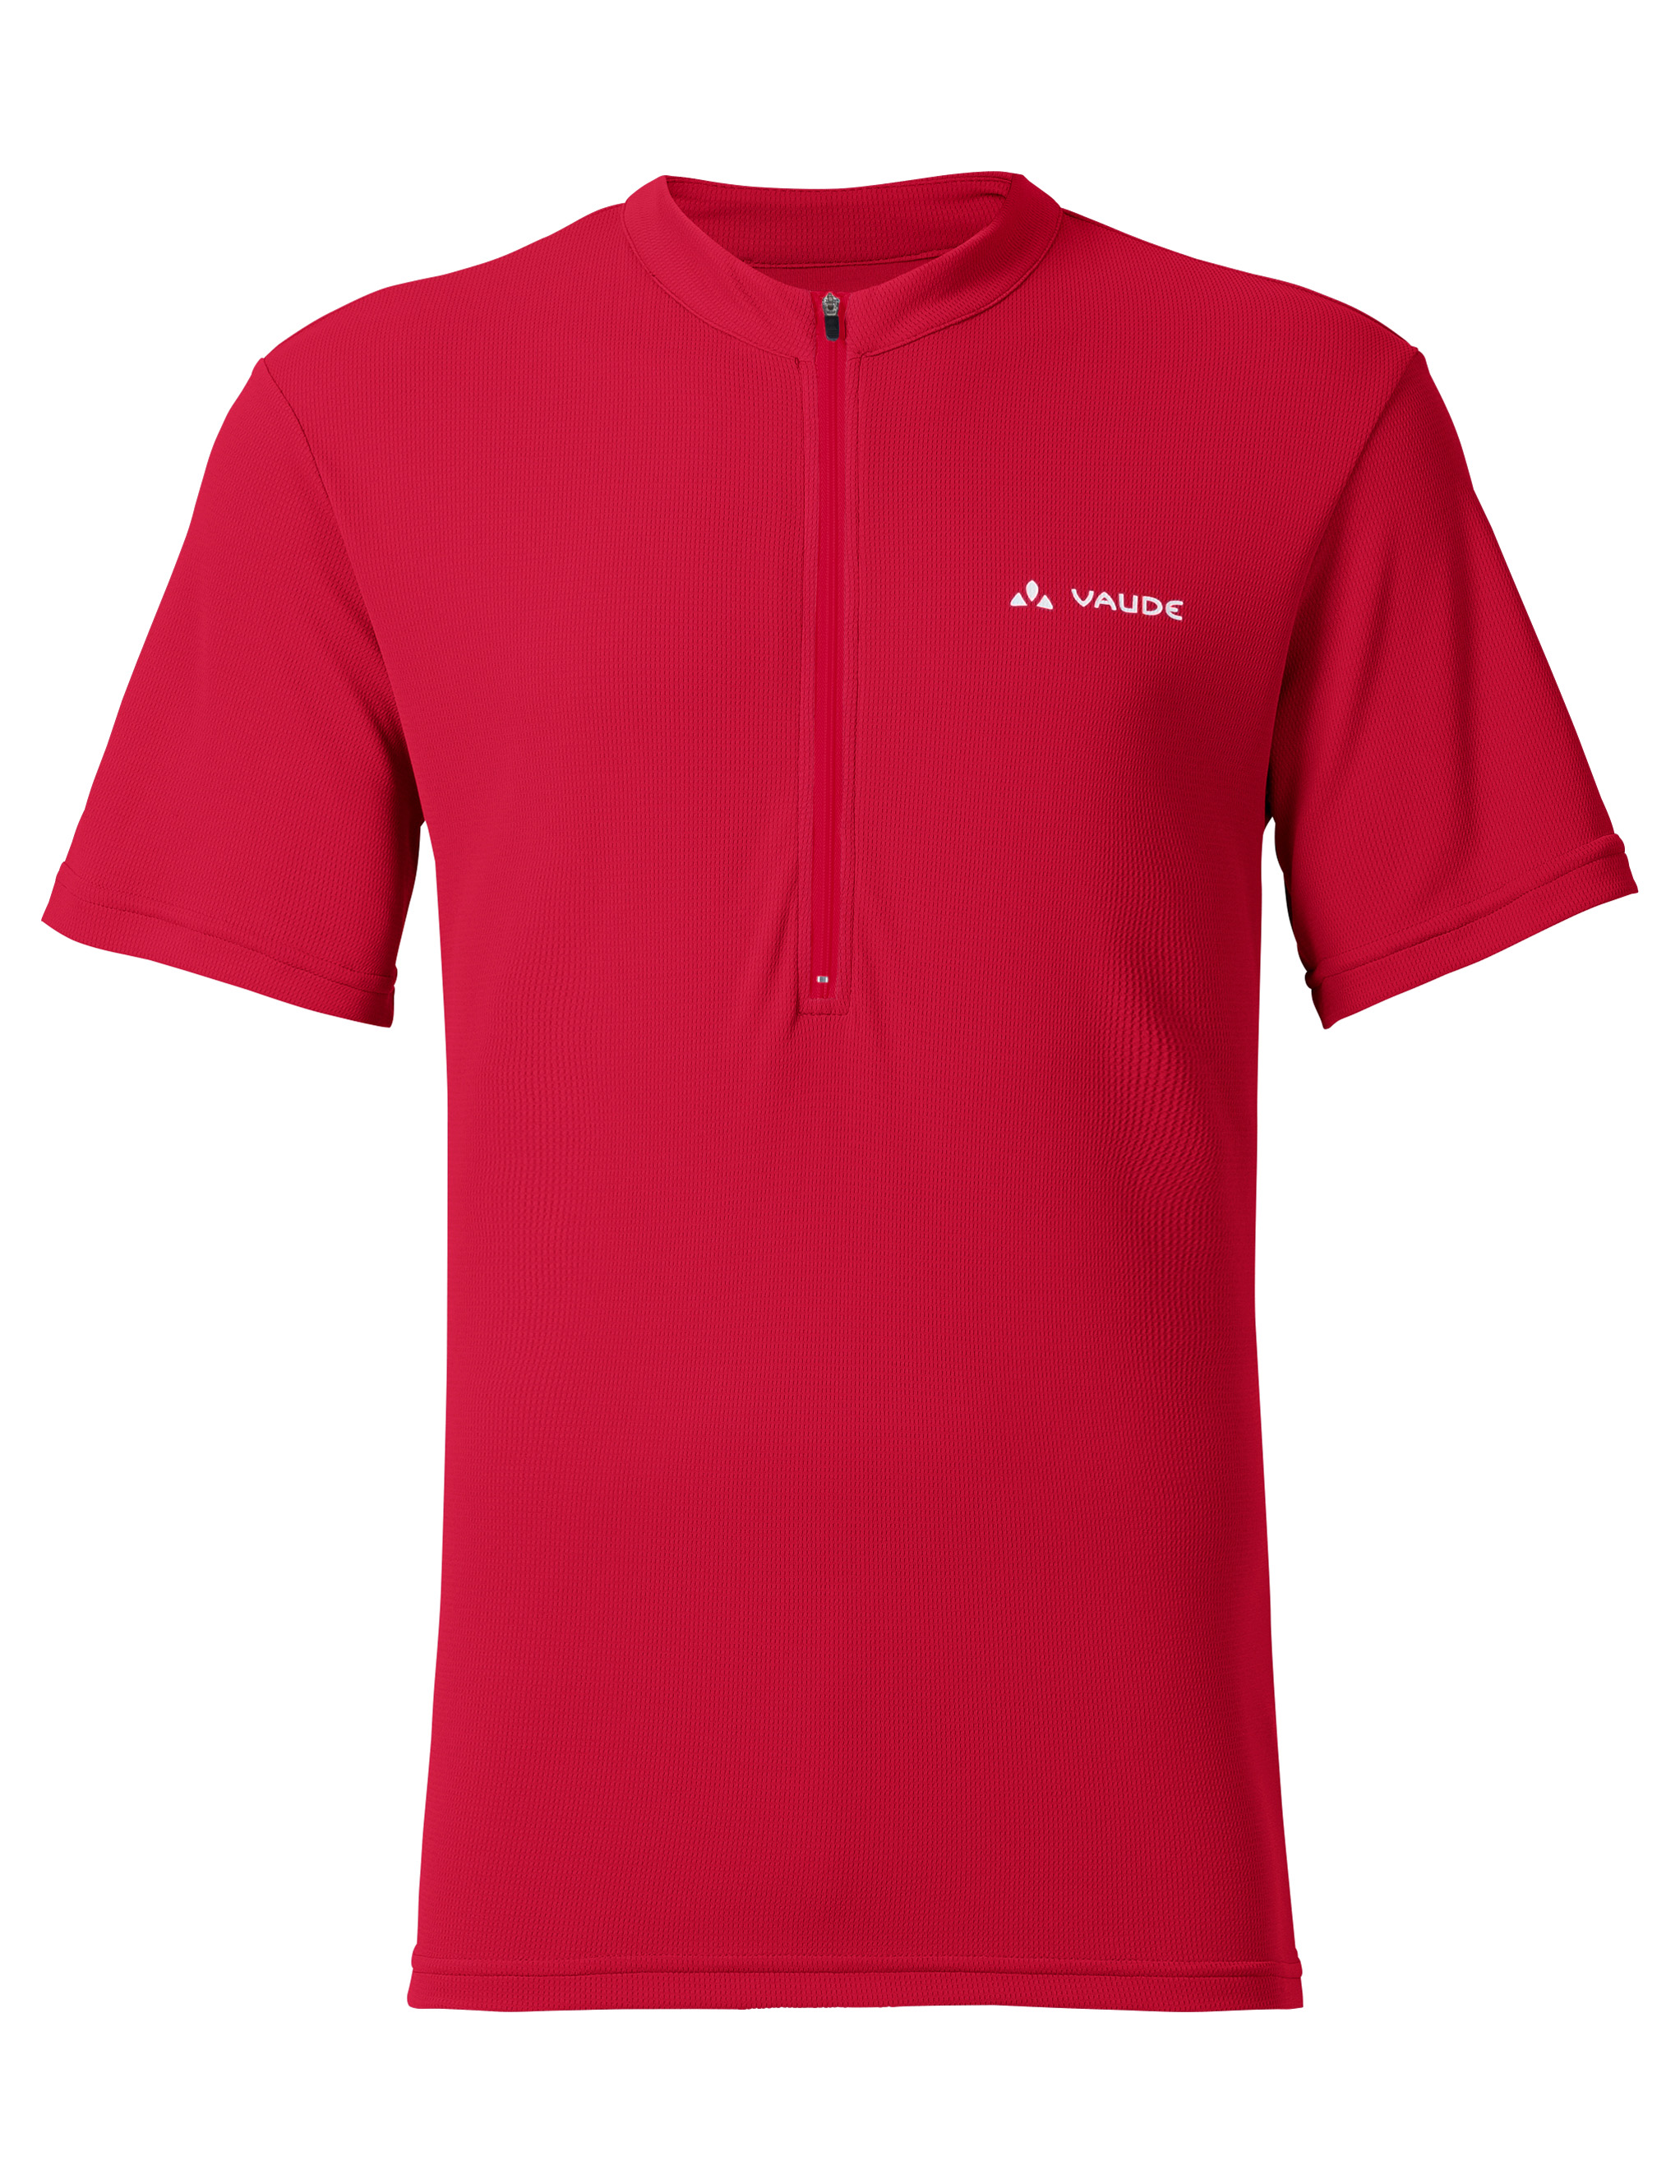 VAUDE Men´s Brand Tec Shirt indian red Größe S - schneider-sports